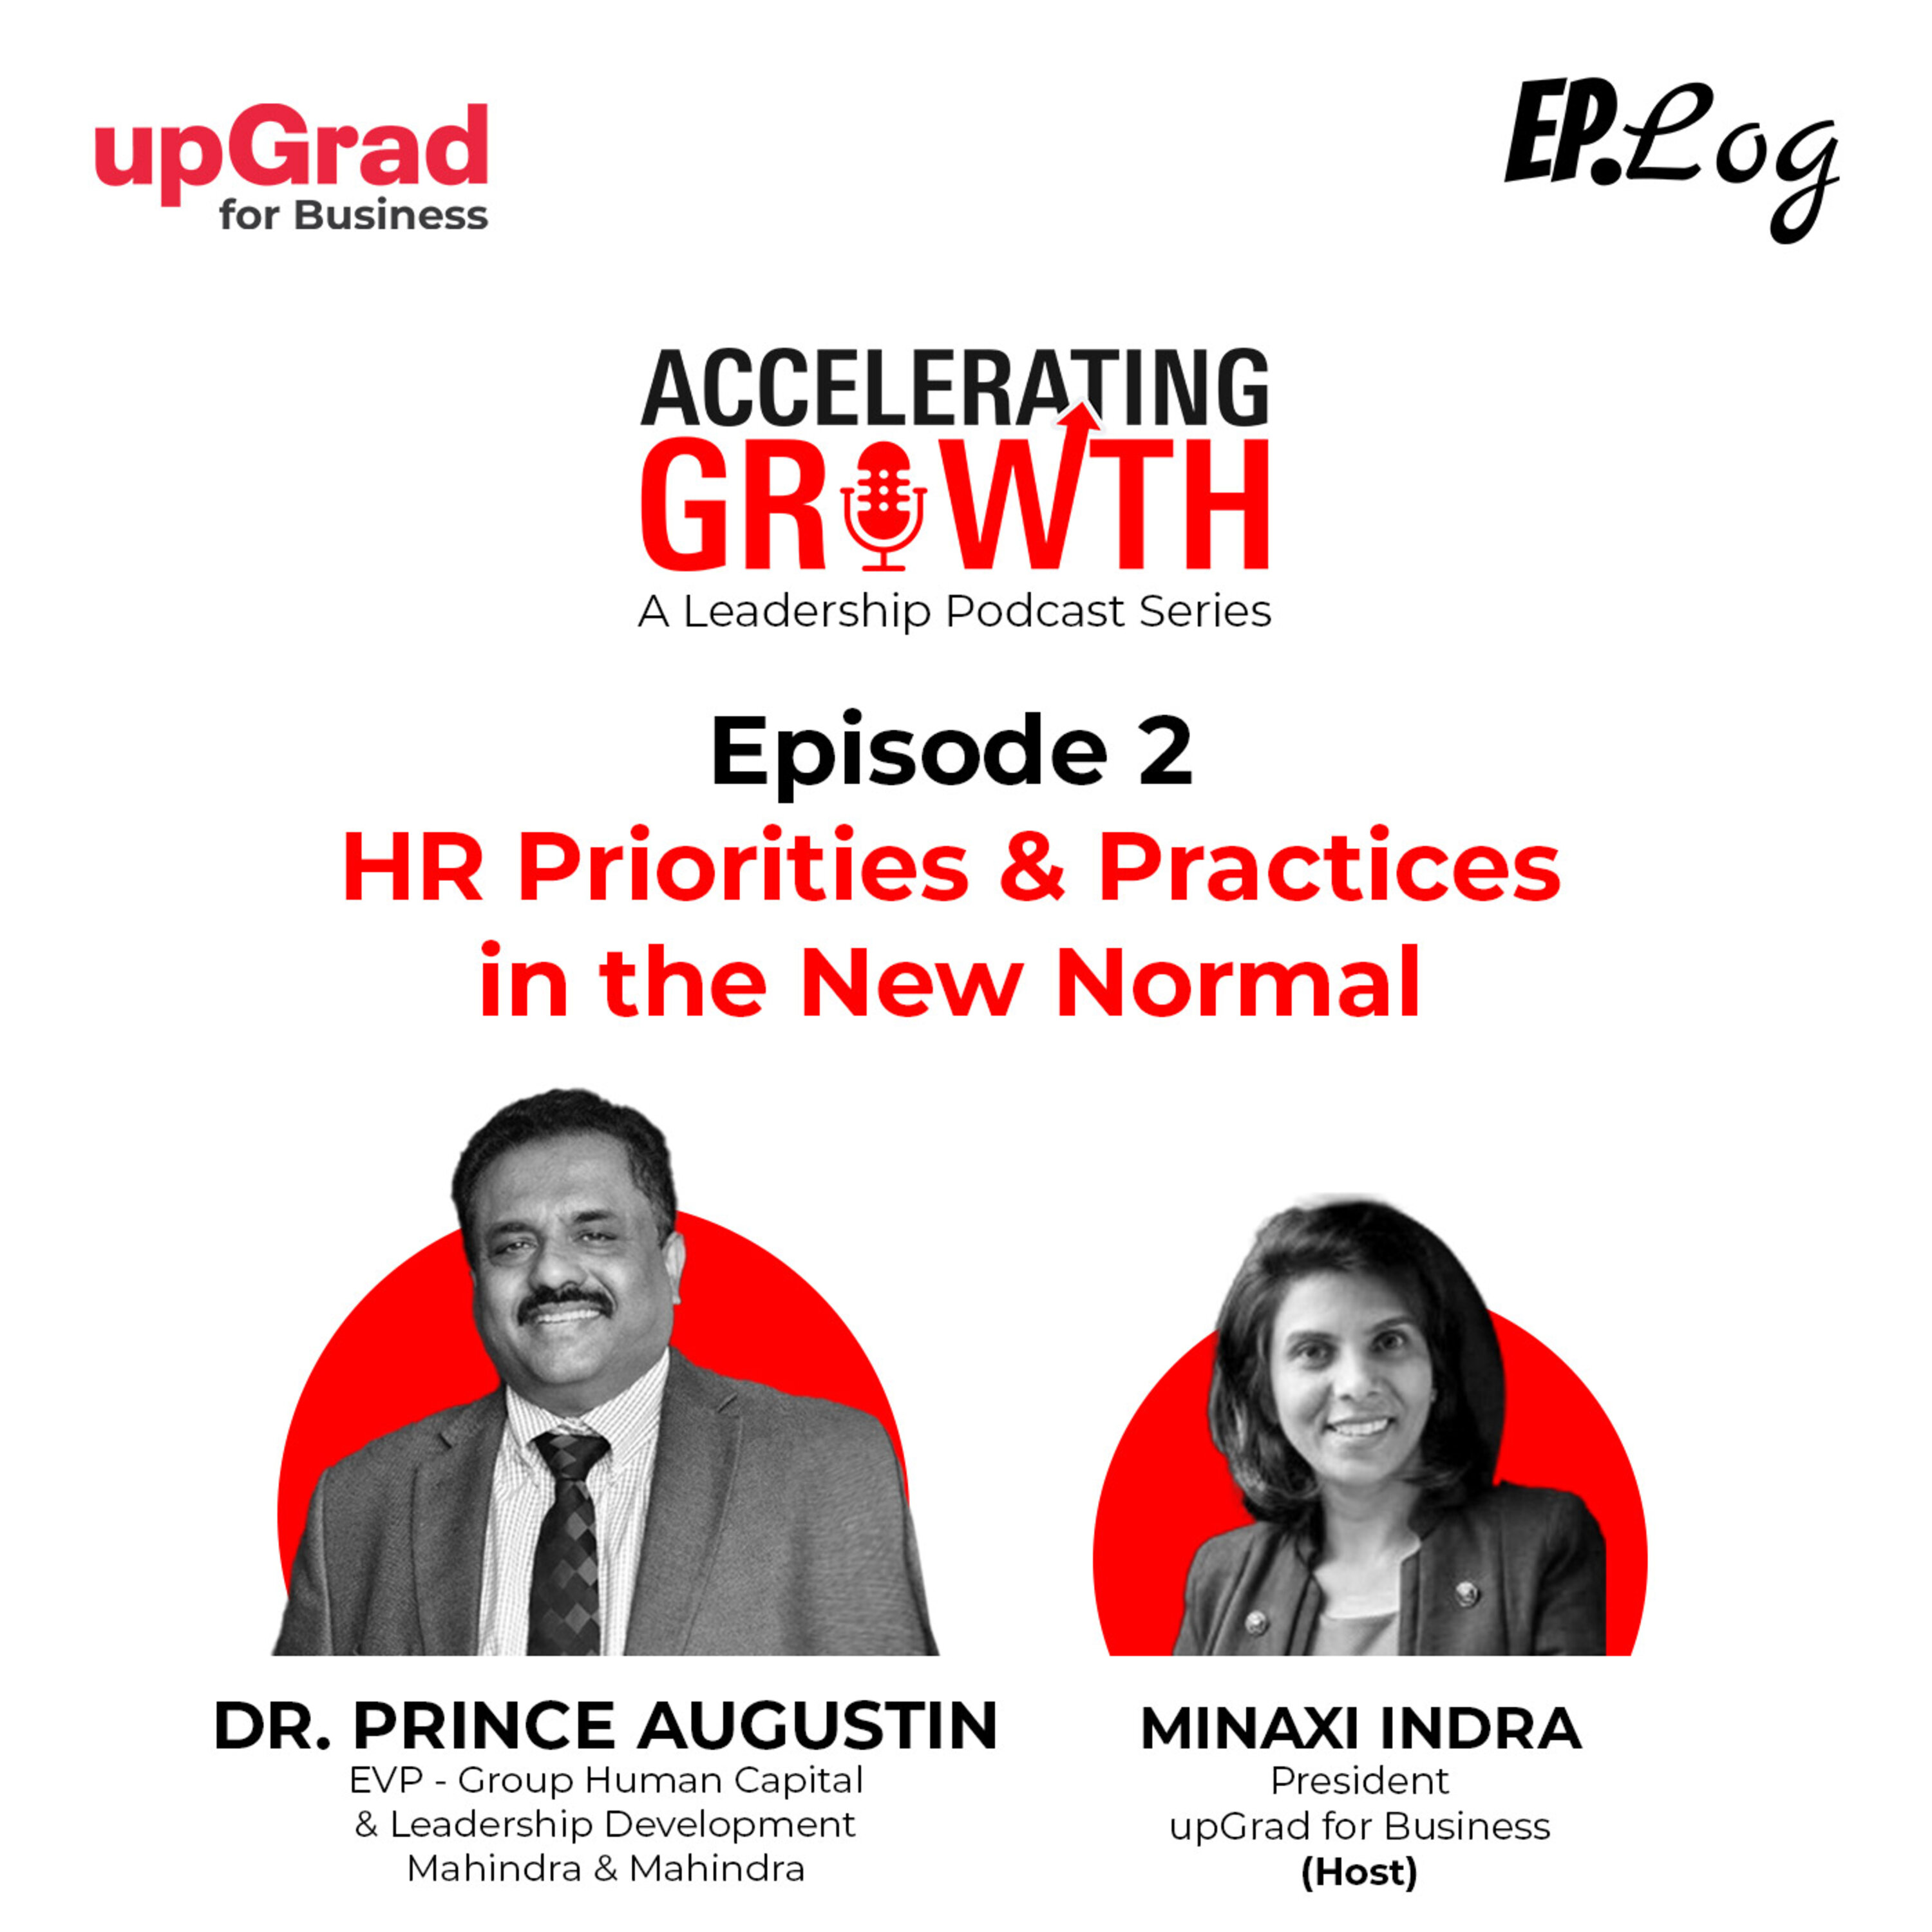 S1E2: HR Priorities and Practices in the New Normal